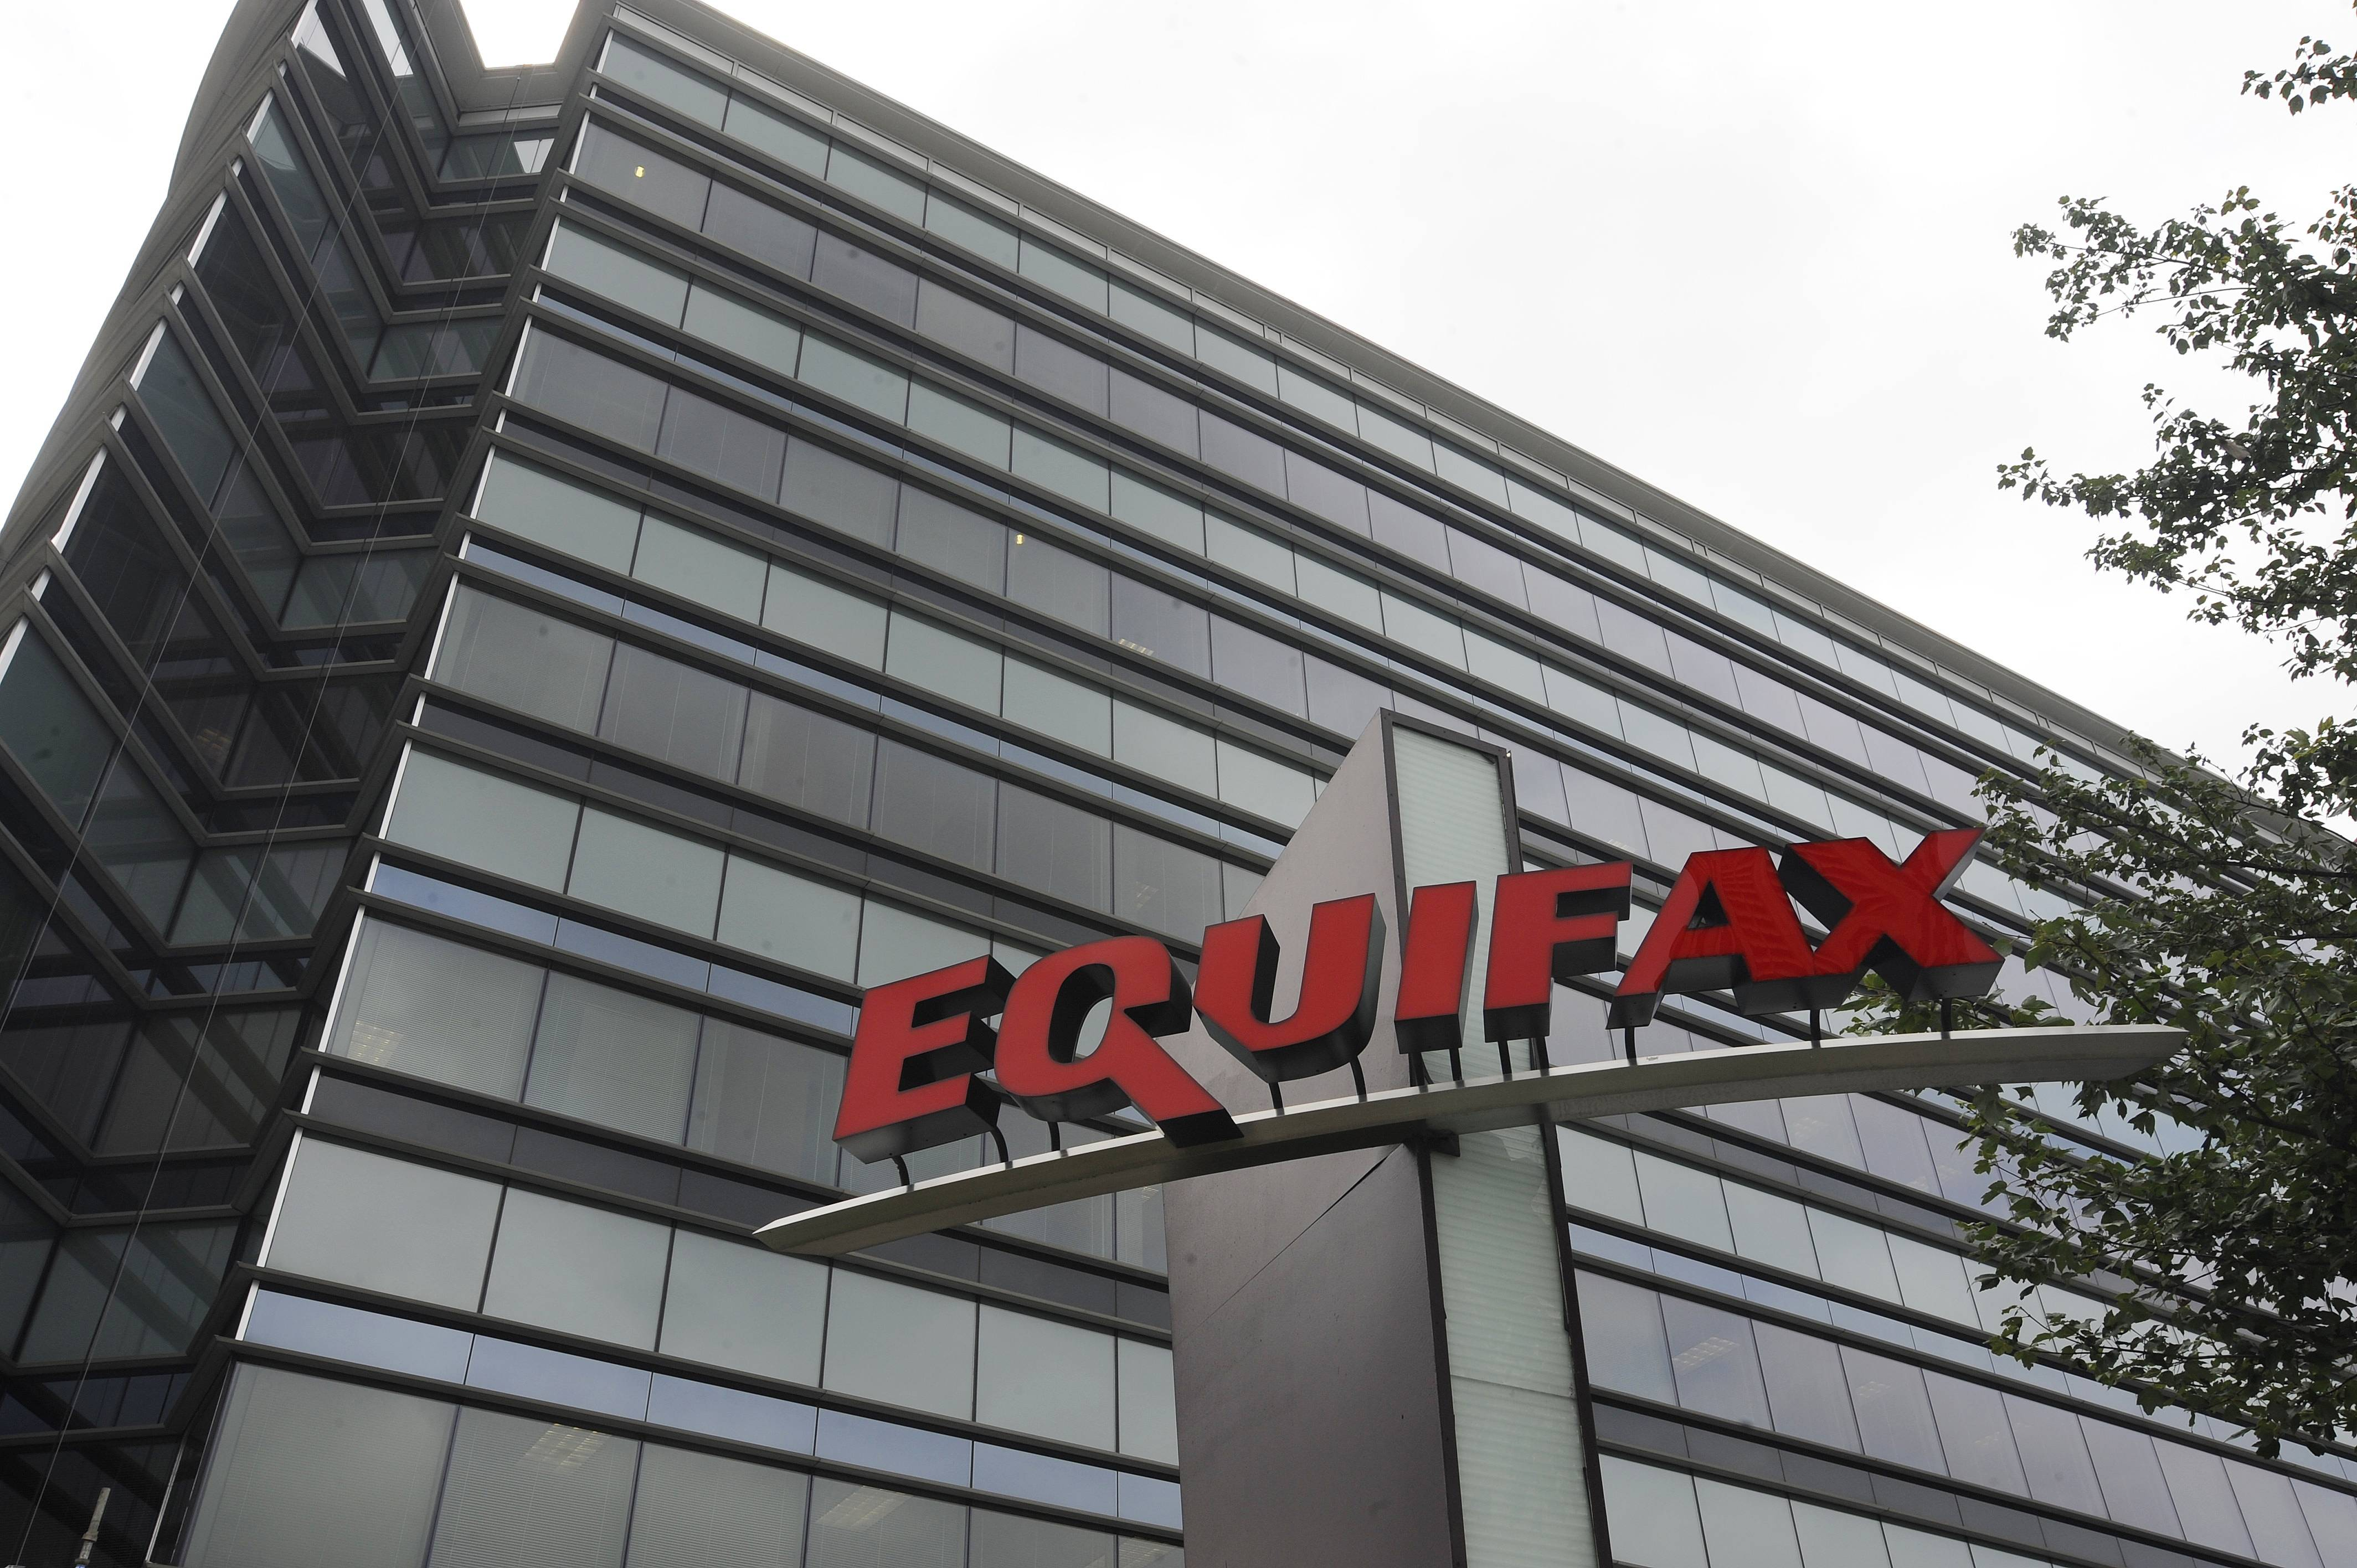 As pressure builds on Equifax to explain how criminals hacked into a massive trove of data on 143 million Americans, the list of unanswered questions is long.